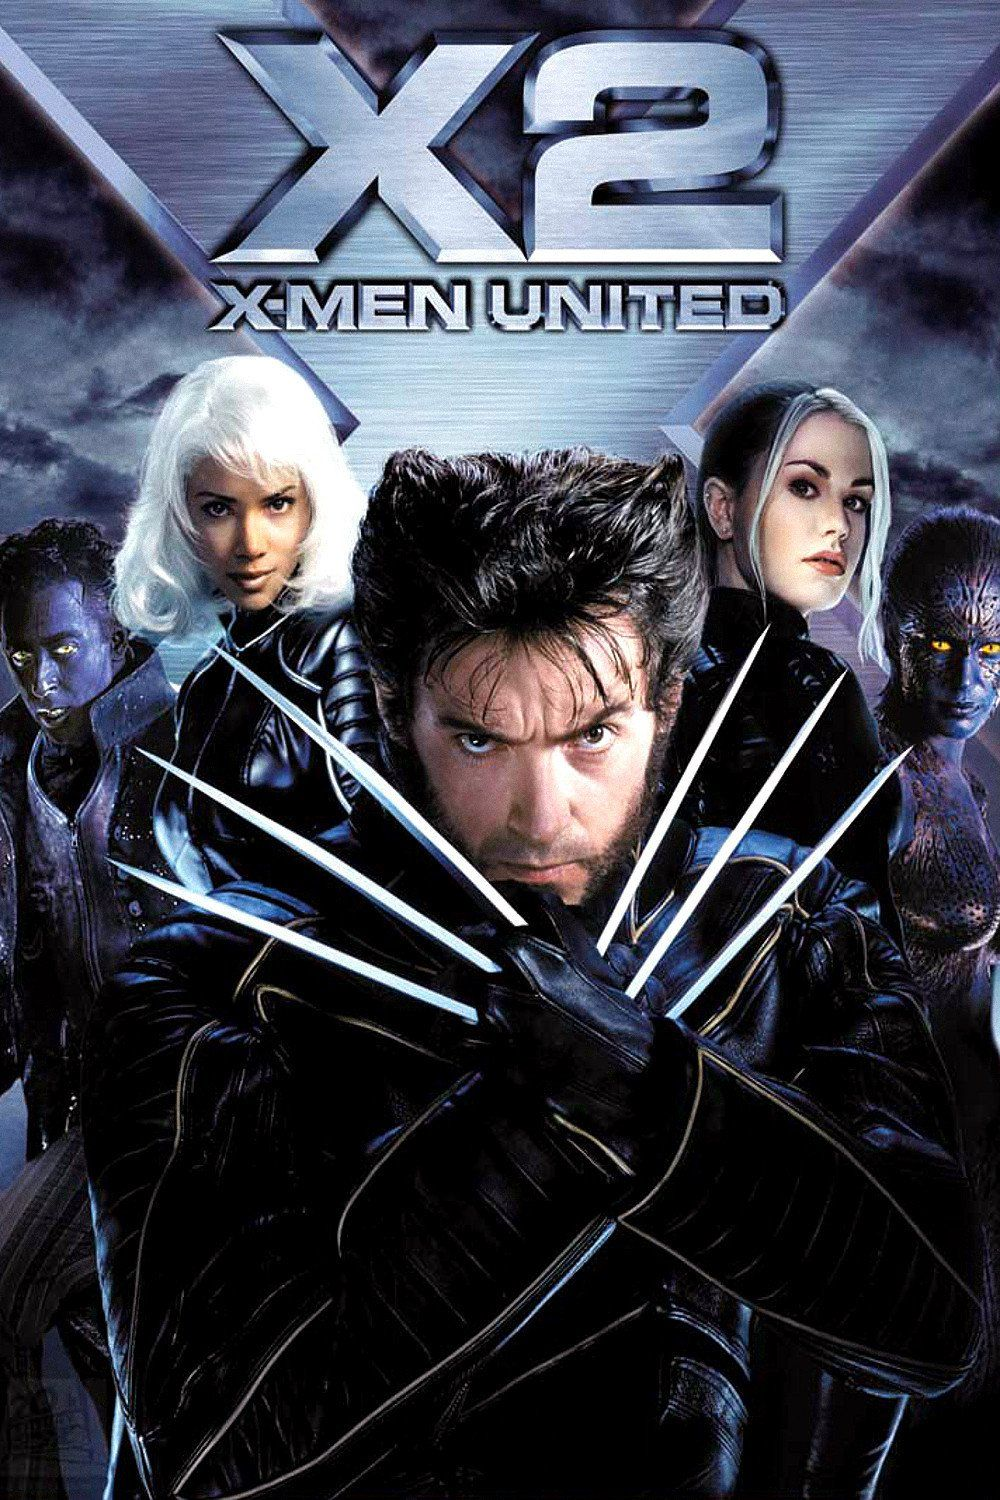 watch movie online x2 x men united full hd quality watch movie online x2 x men united full hd quality